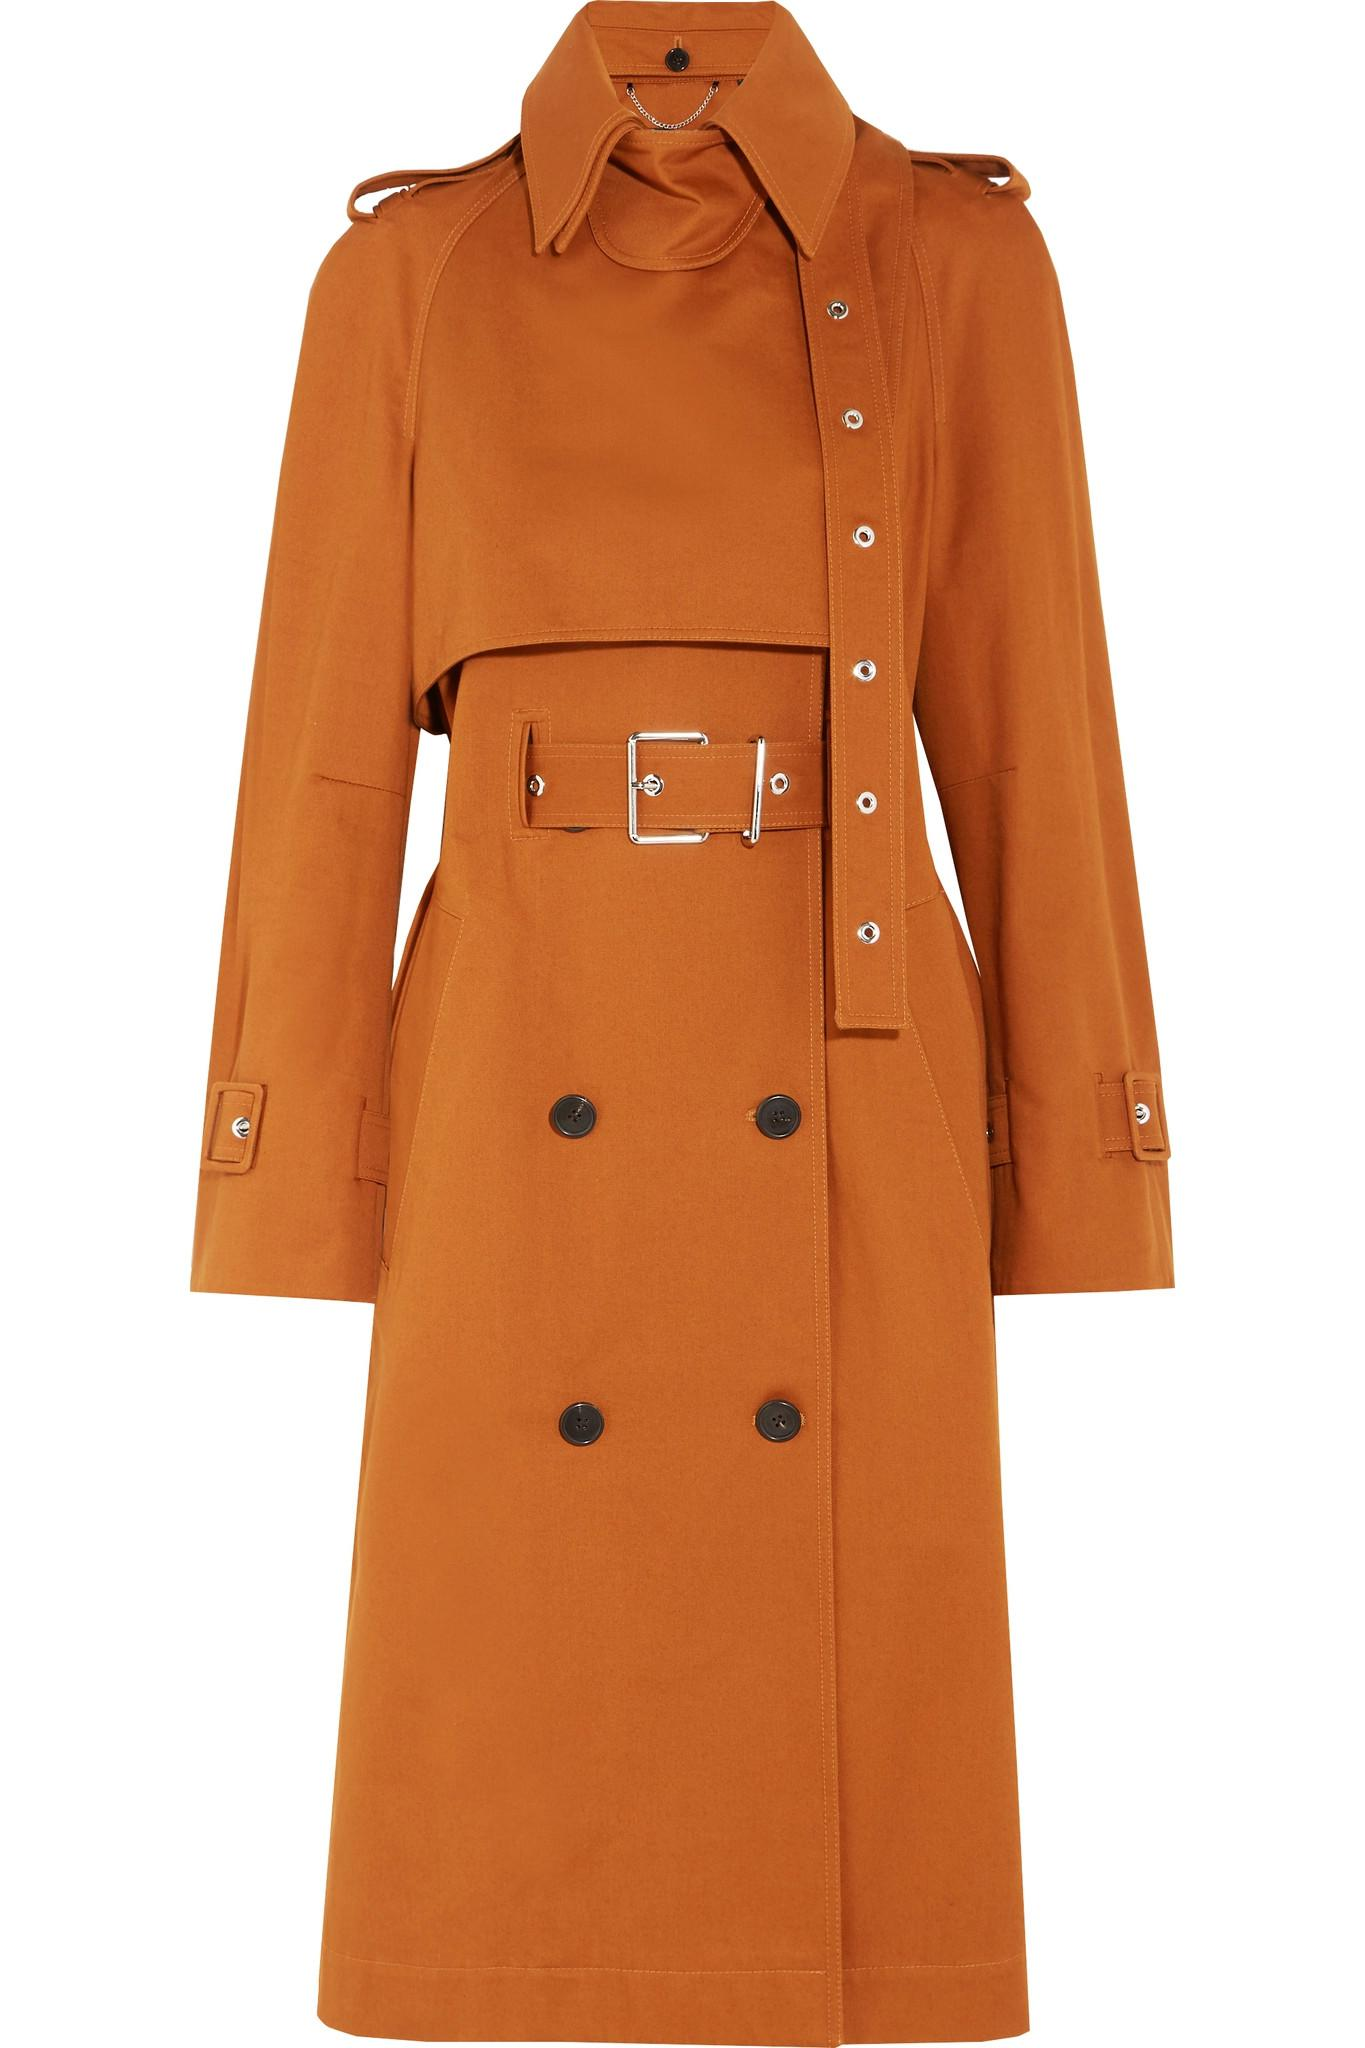 c57c6dfb26f5 Lyst - Proenza Schouler Double-breasted Cotton-twill Trench Coat in ...